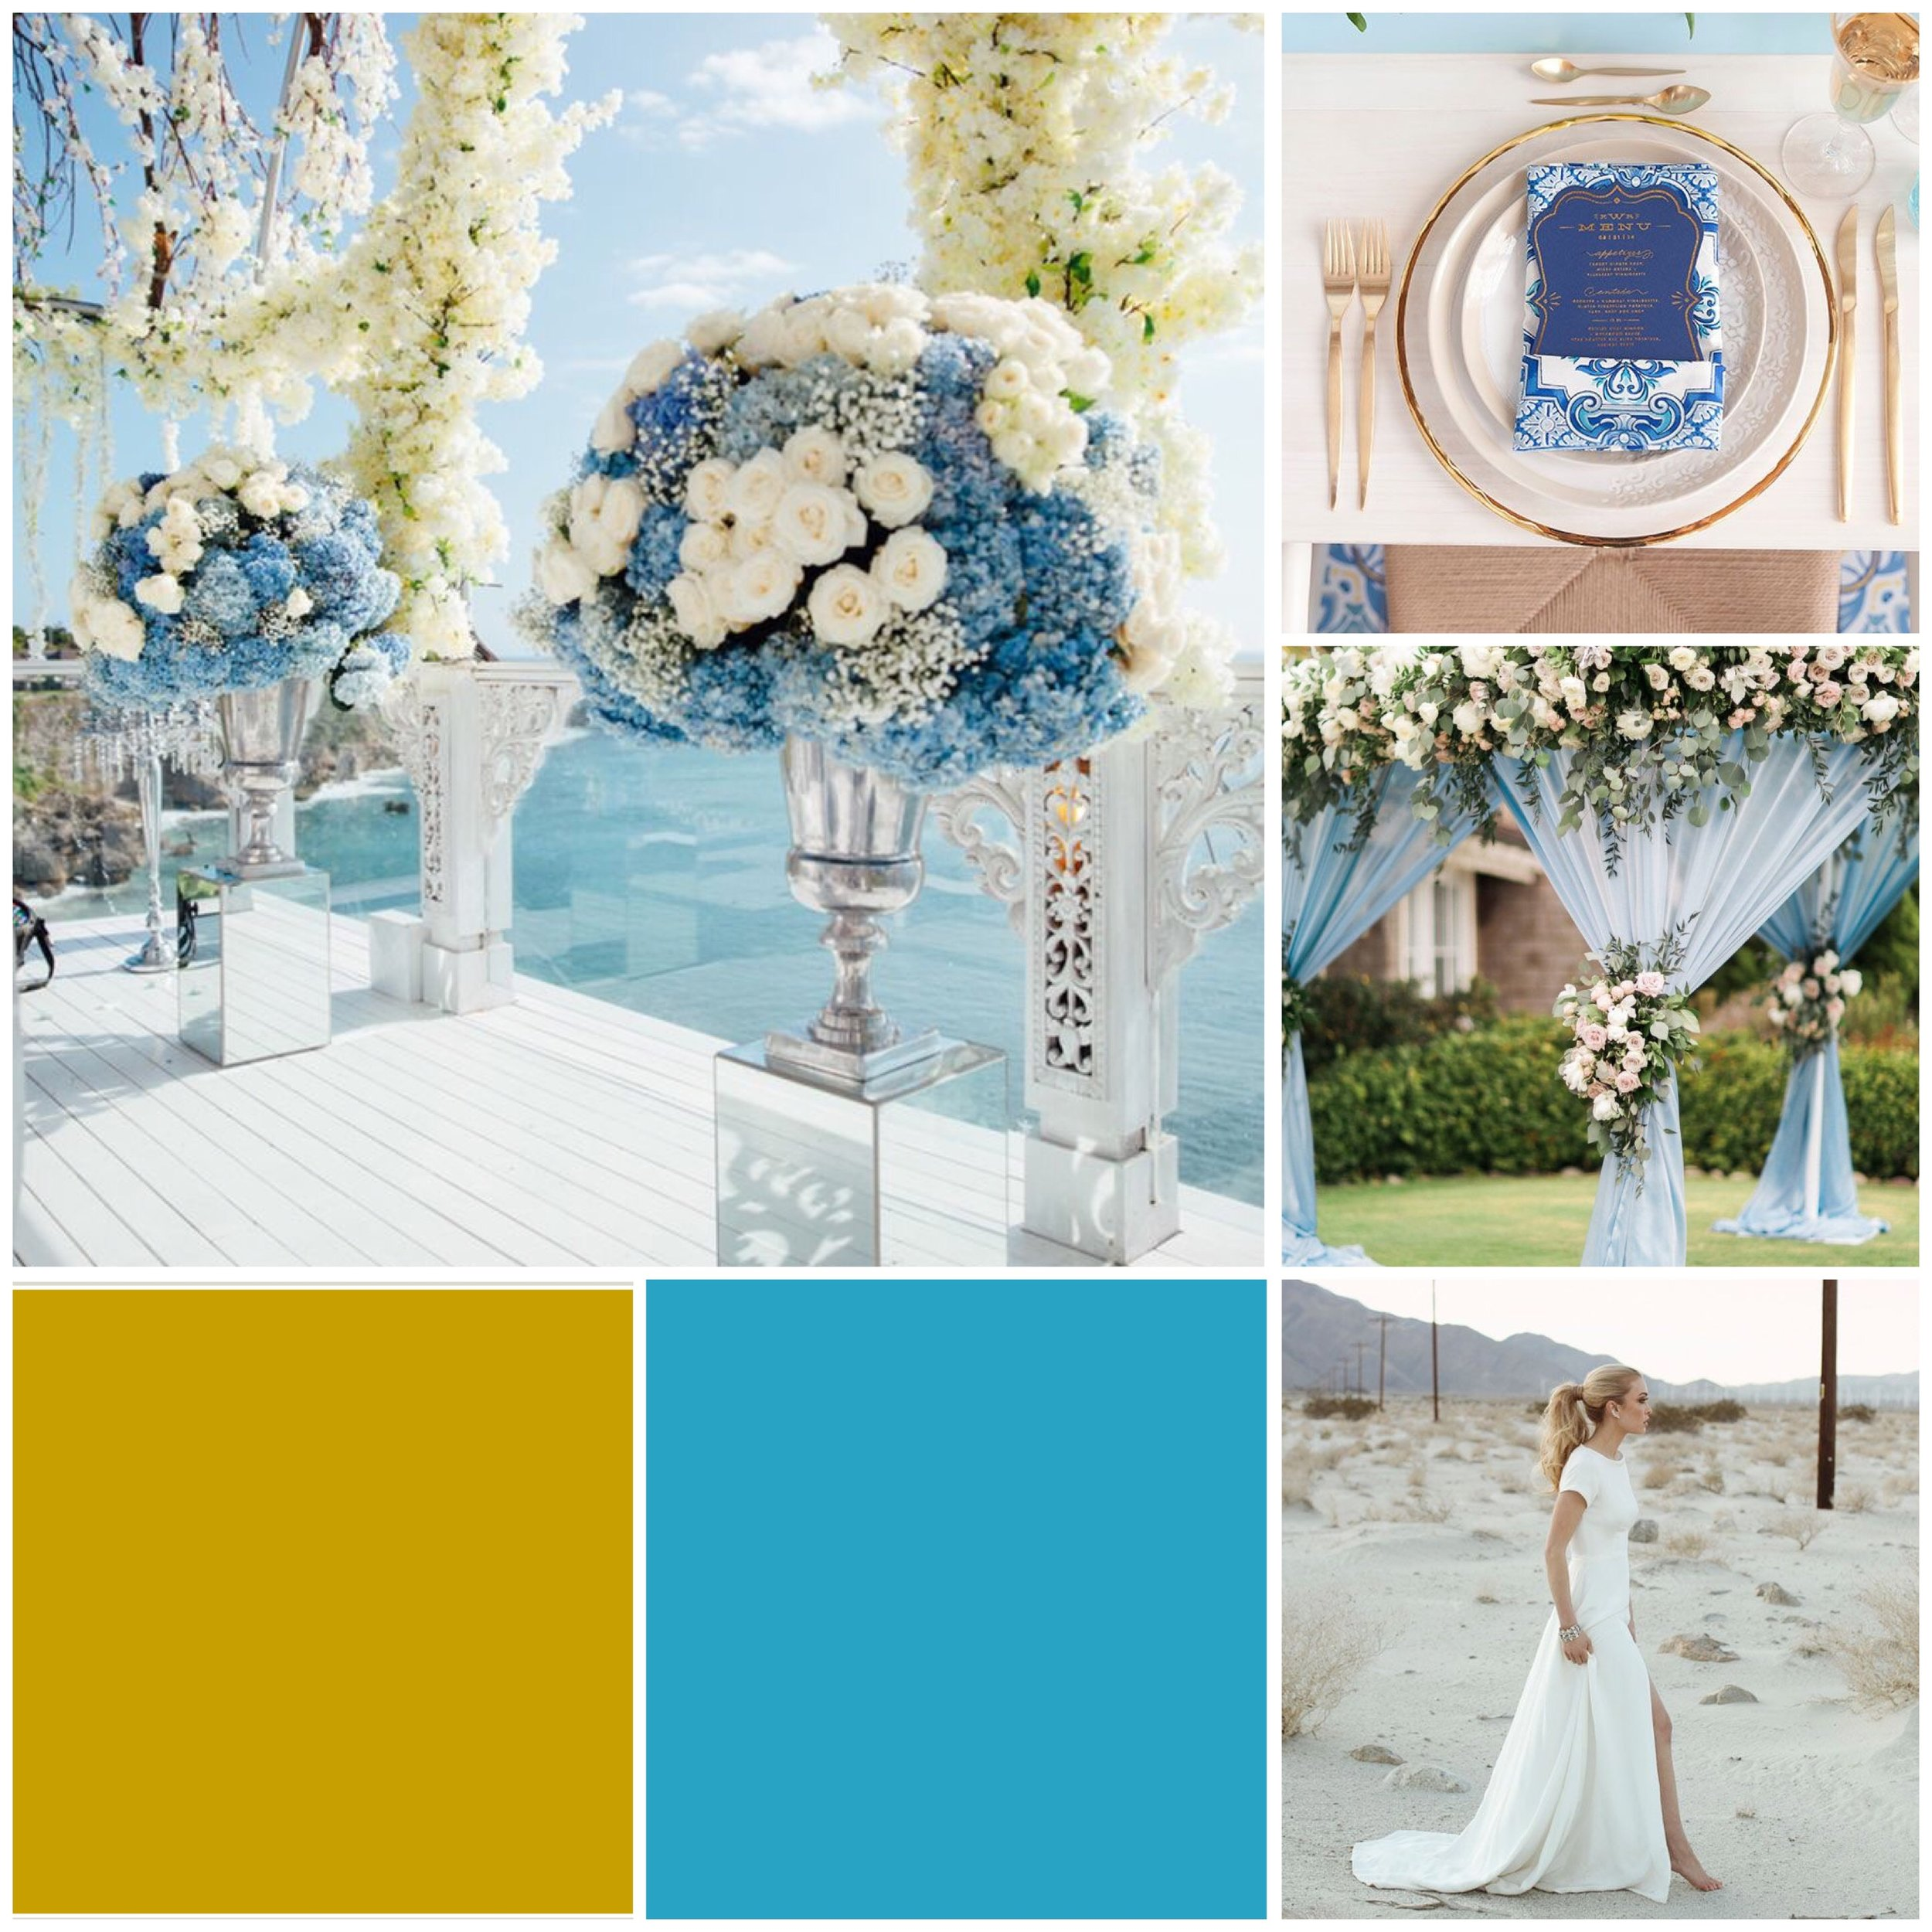 Horizon Blue & Gold Moodboard for your wedding inspiration.